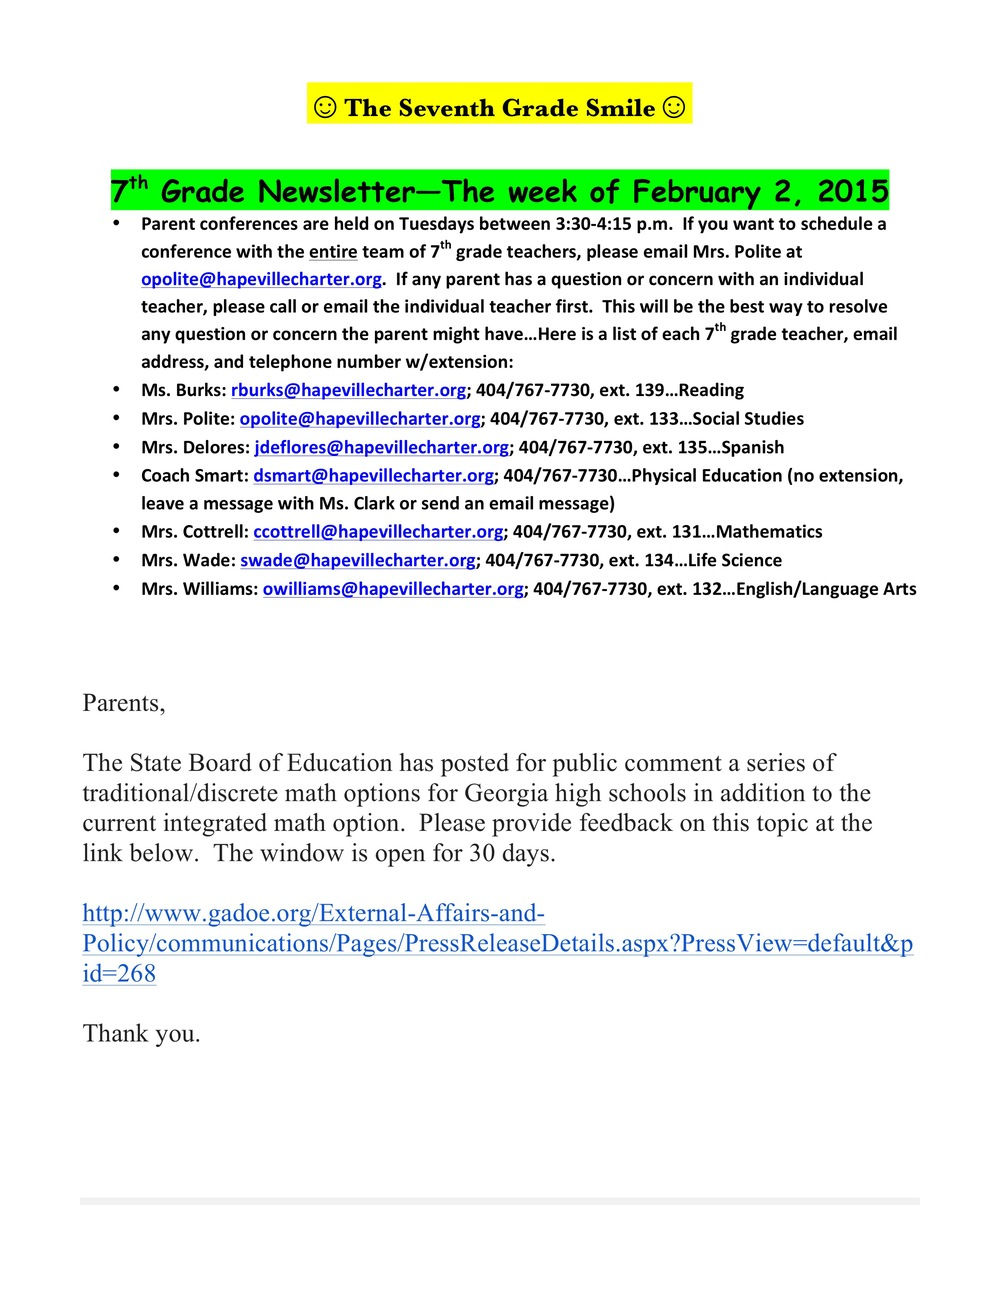 Newsletter Image7th grade February 2 2015.jpeg